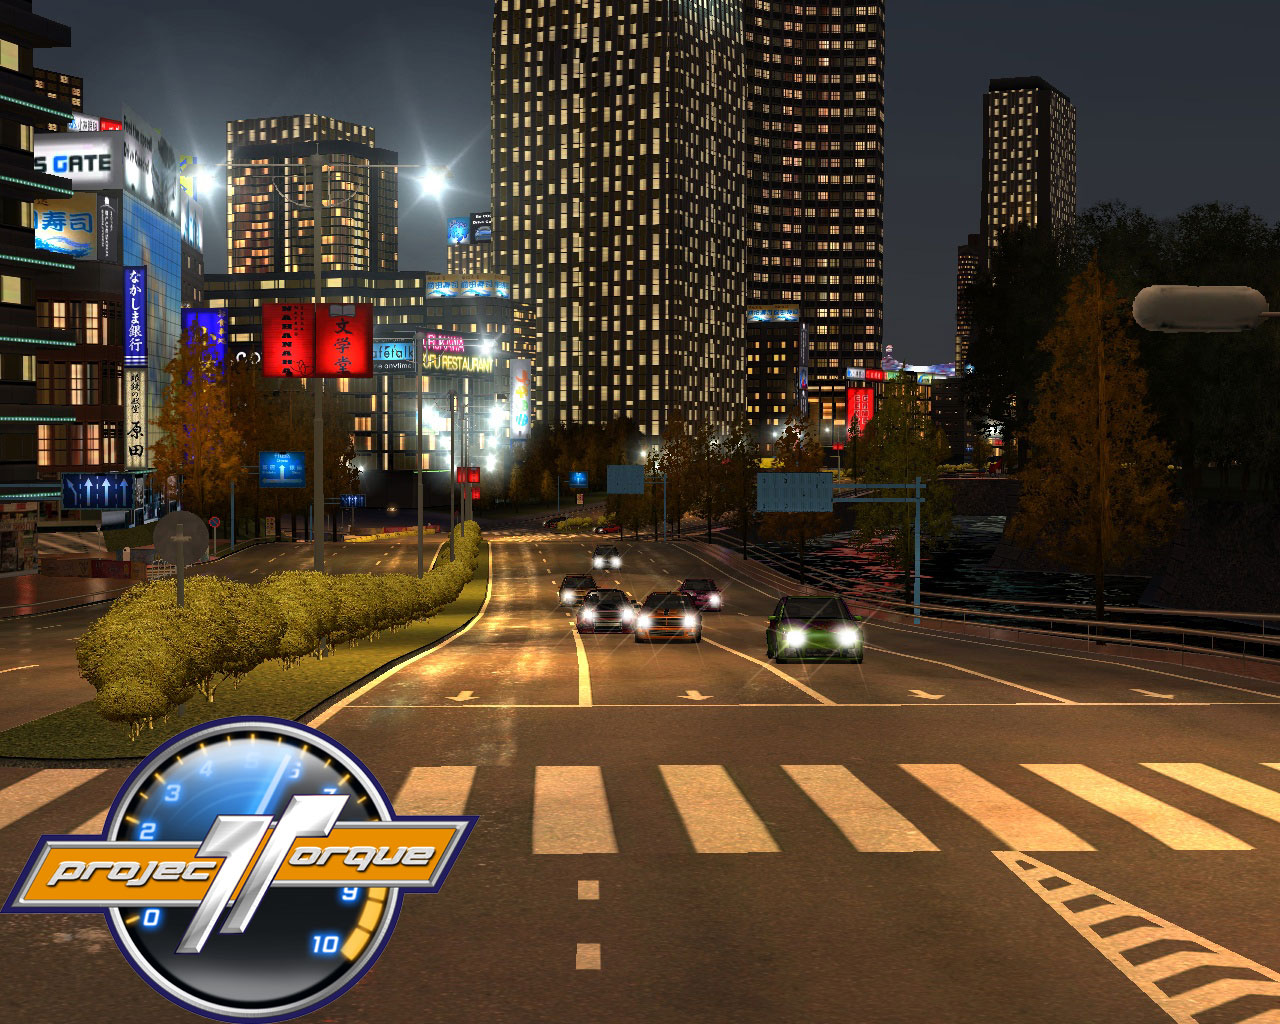 Best Police Car Games Online